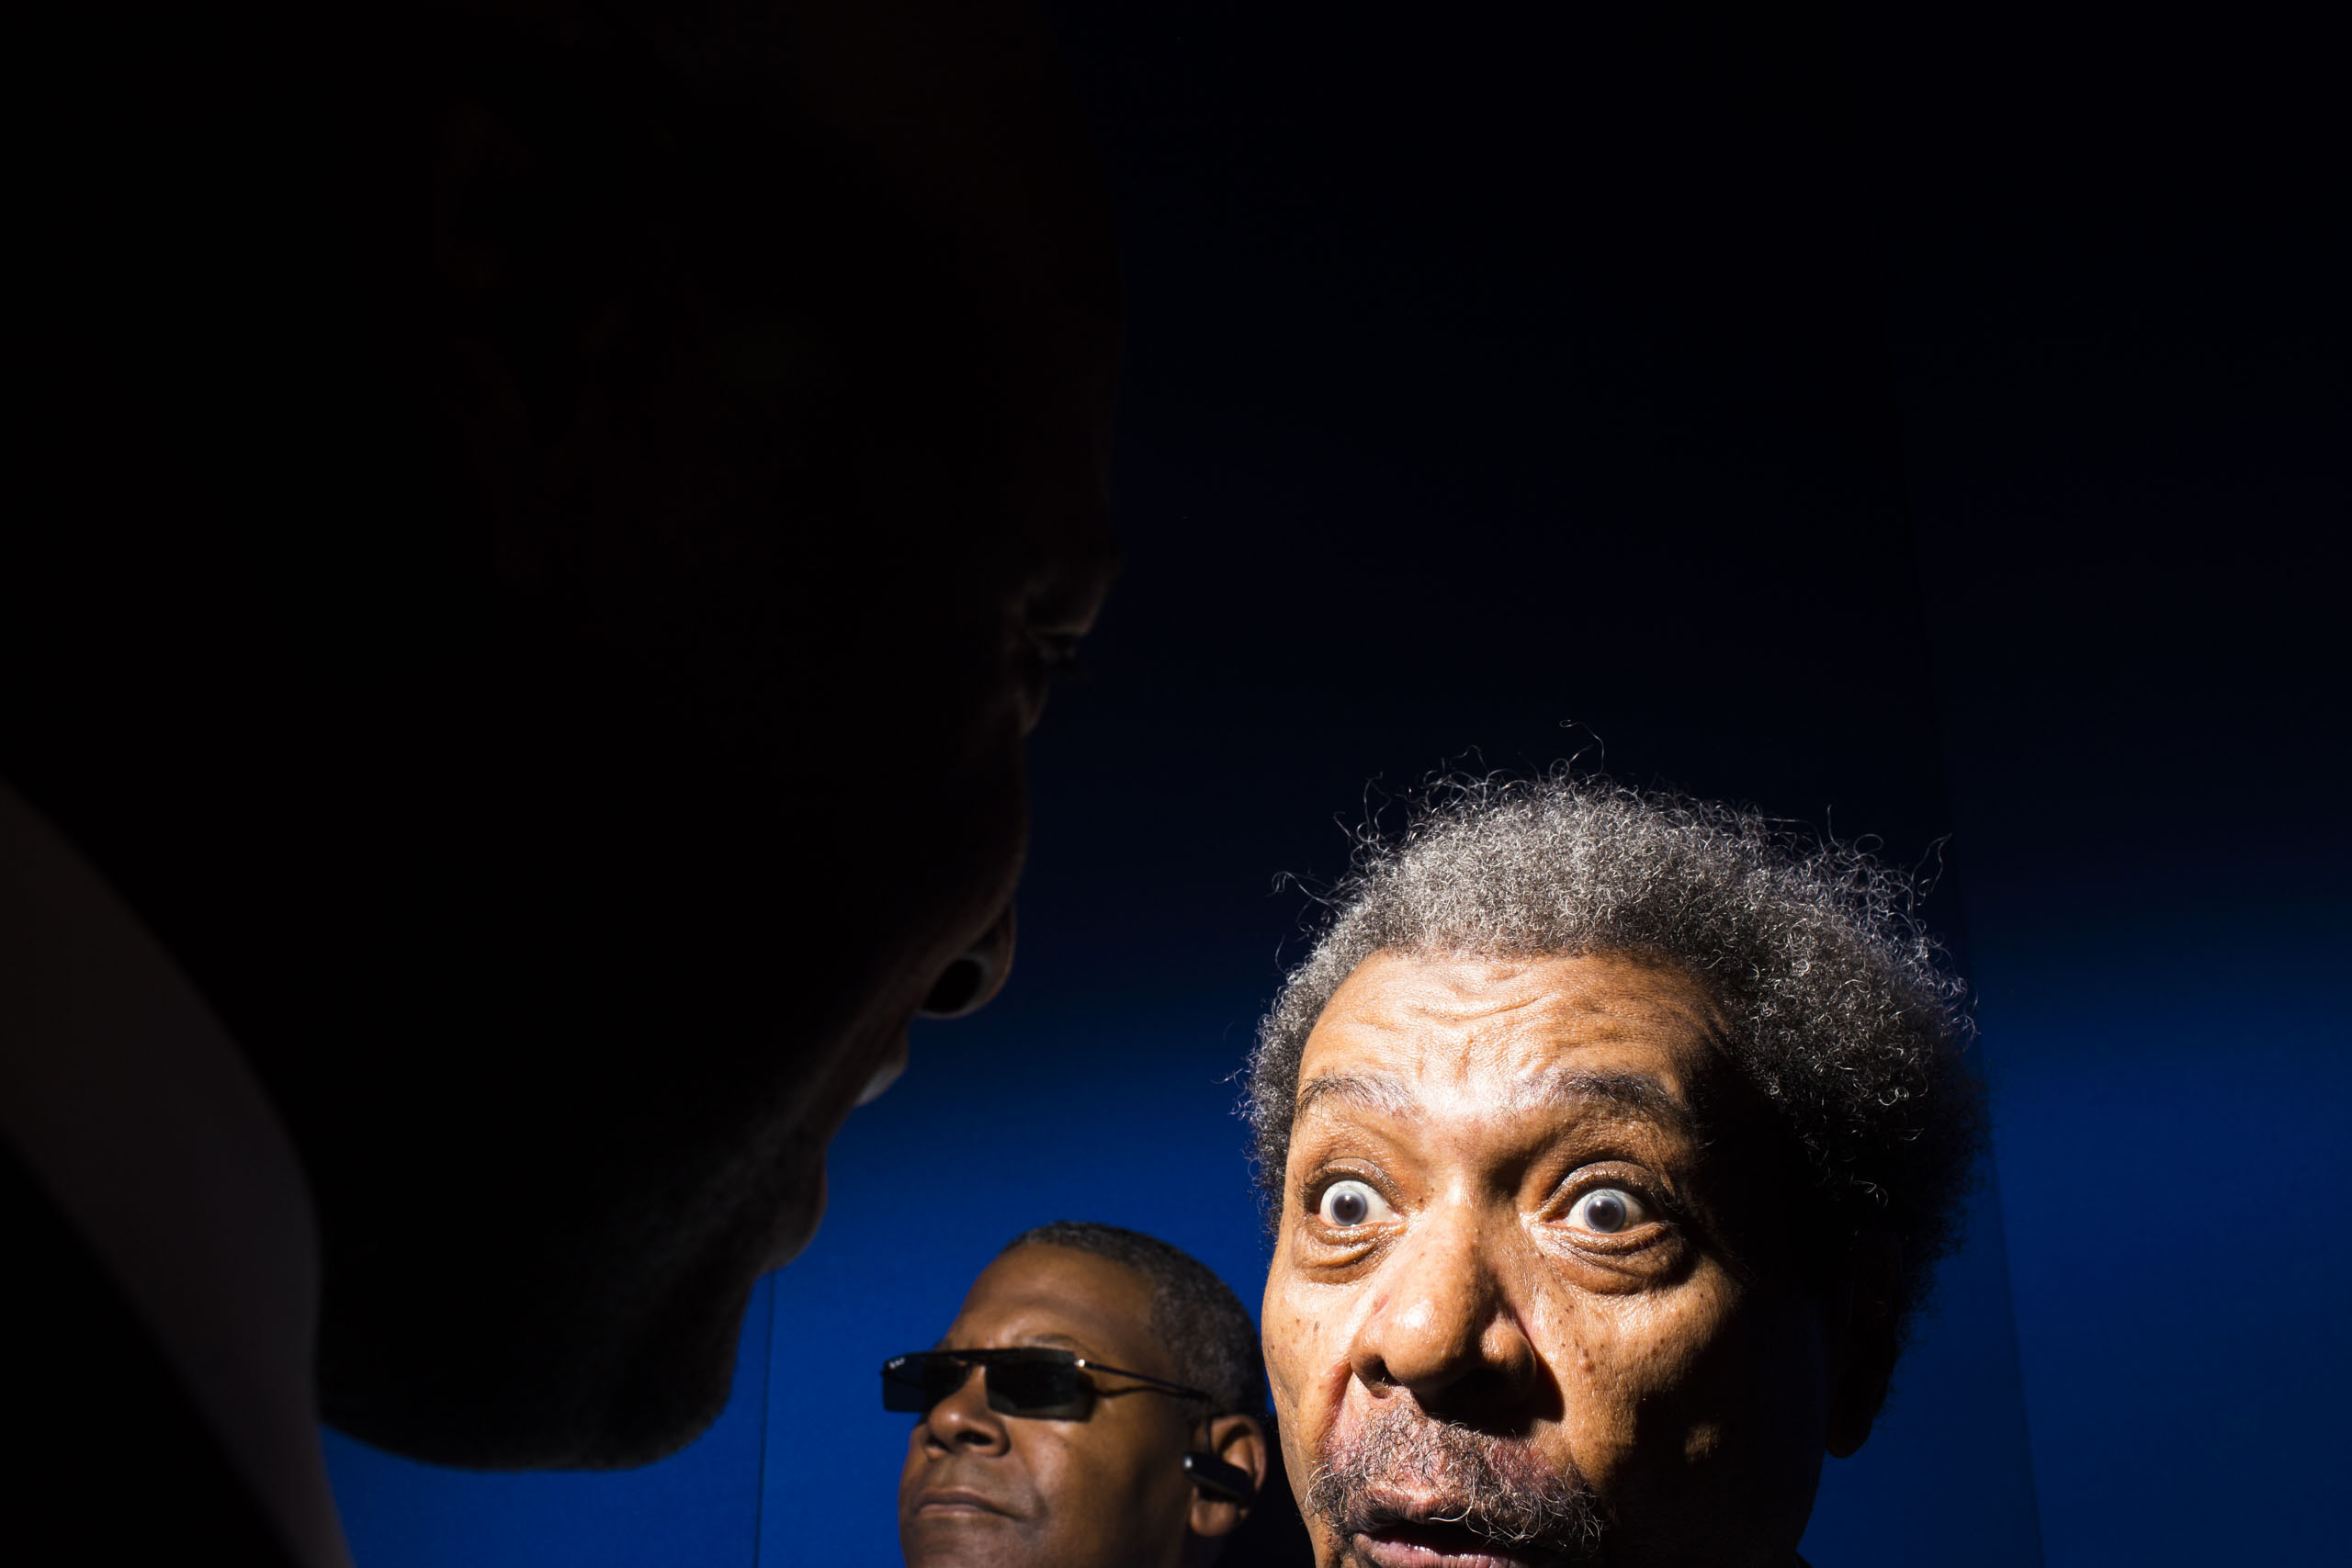 Cleveland native and famed boxing promoter Don King at the Republican National Convention, July 19, 2016 in Cleveland.